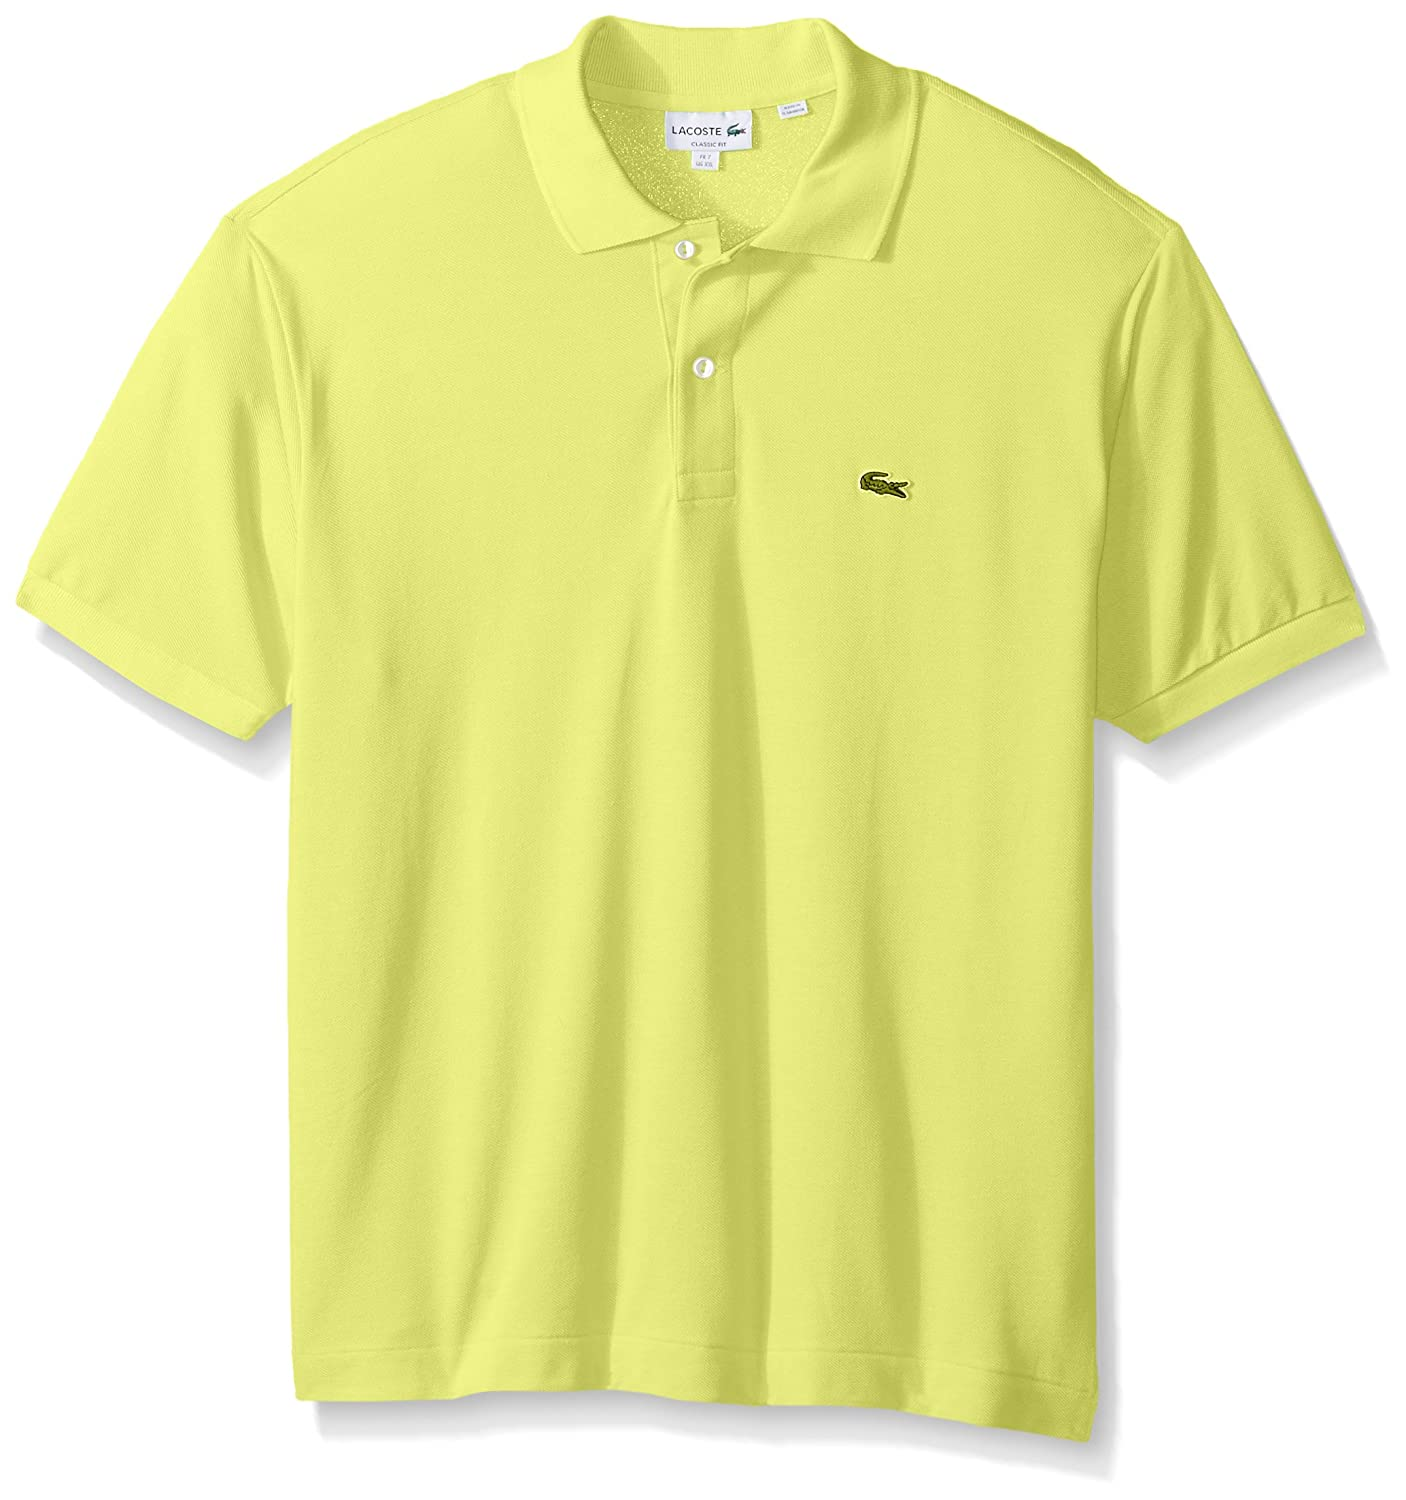 Lacoste ラコステMen's L-1212,半袖 鹿の子 ポロシャツ(並行輸入品) B01M5E9GPY X-Small|Limeira Limeira X-Small